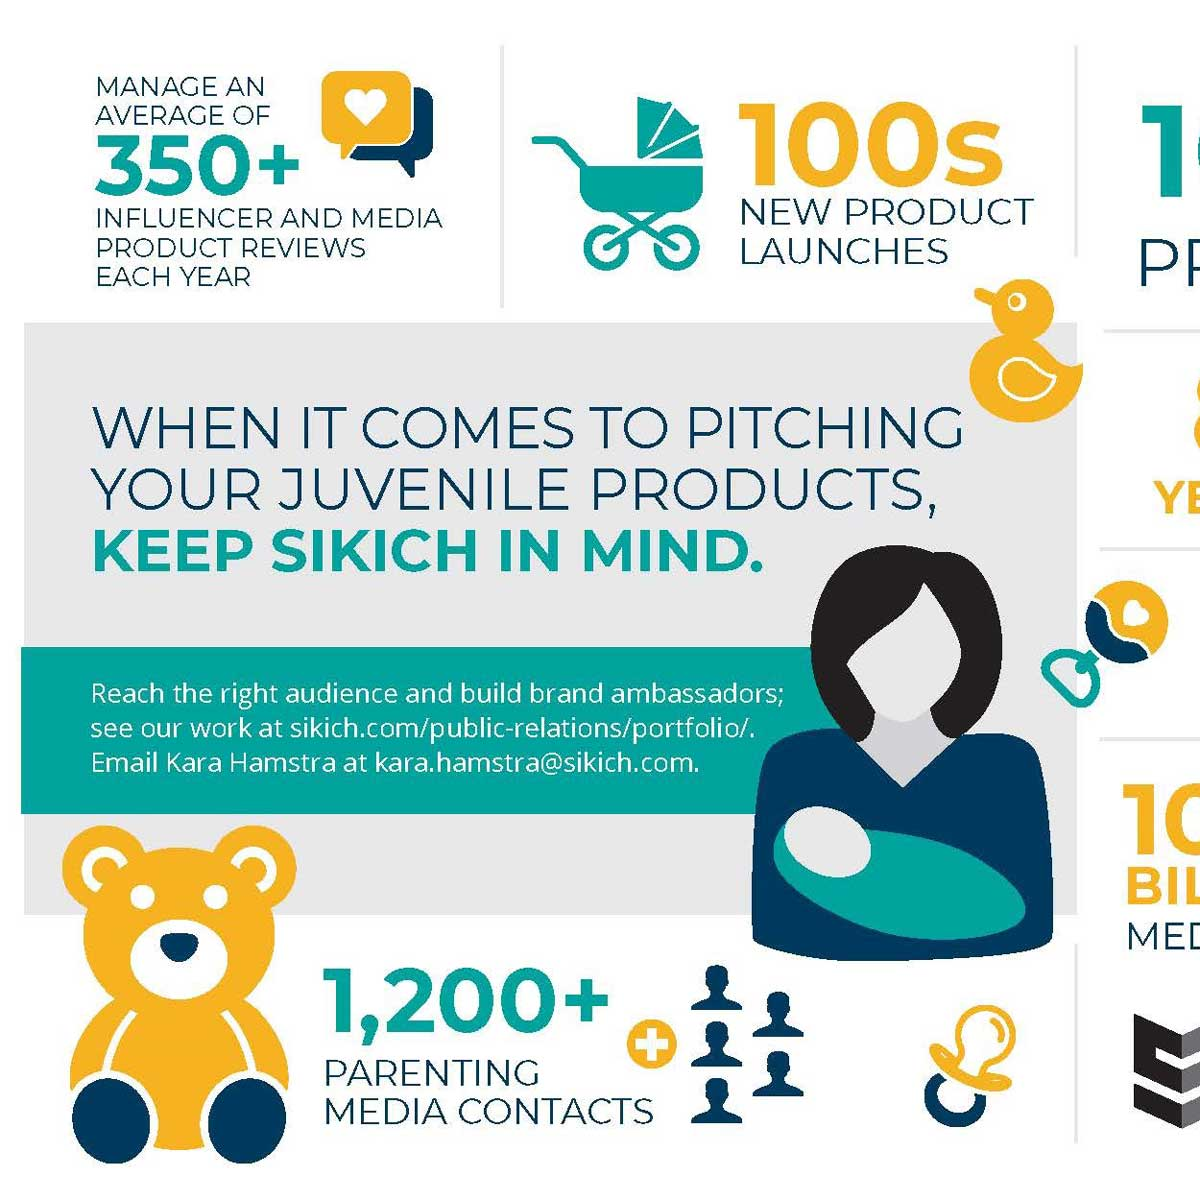 an infographic with facts about juvenile product PR activities at Sikich